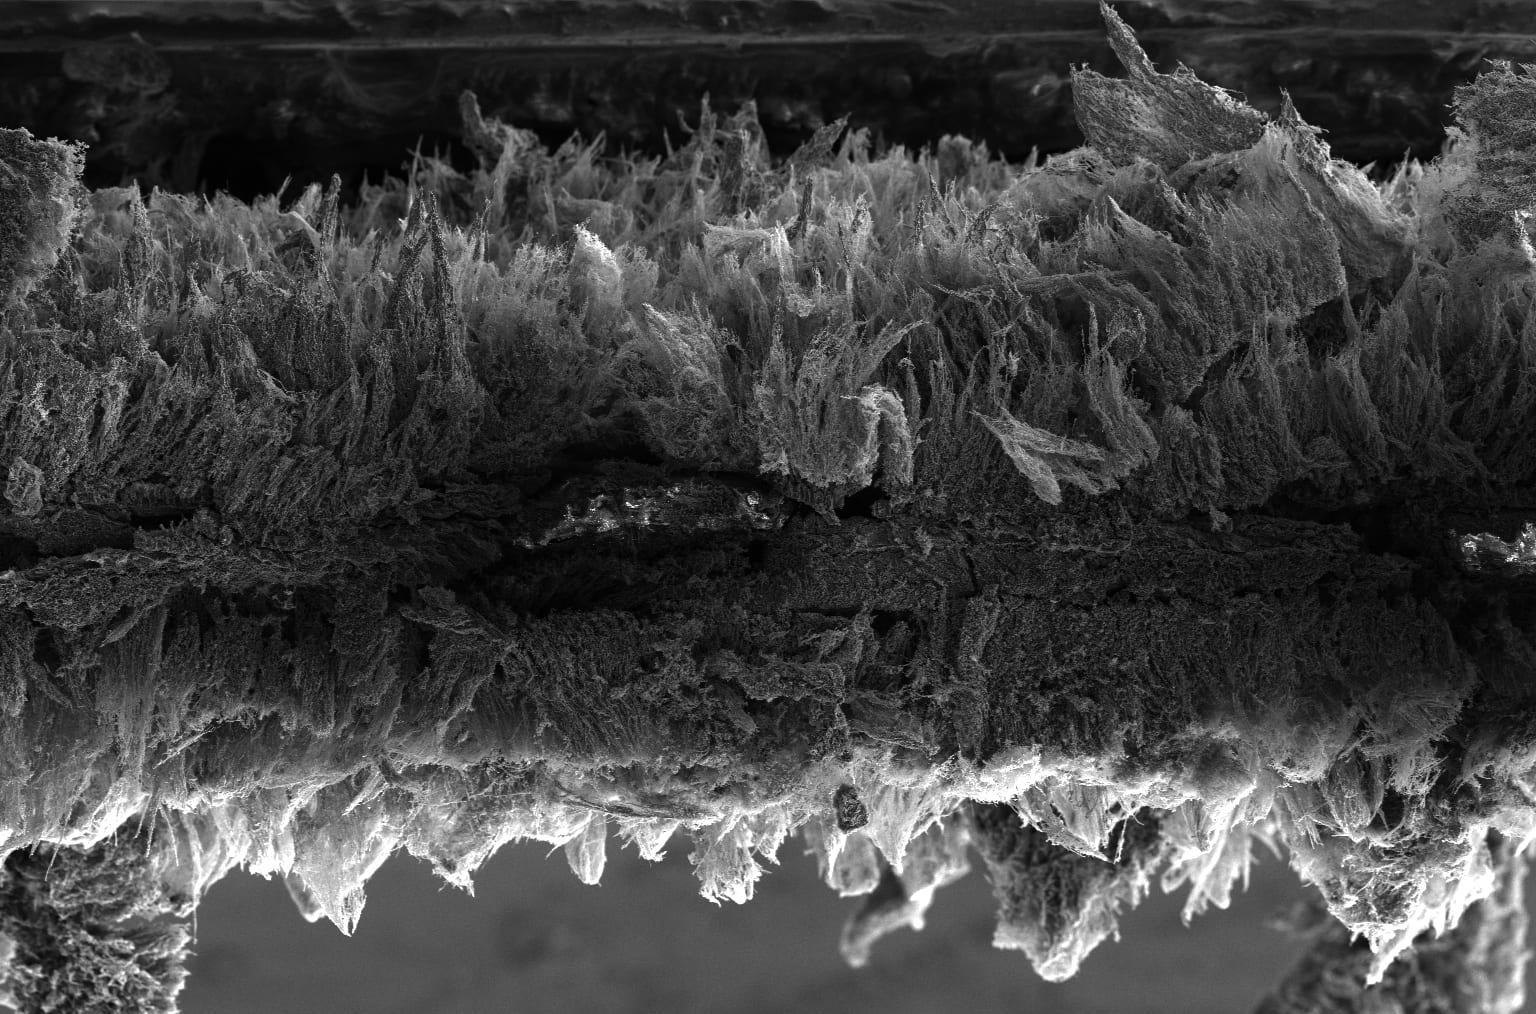 Electrified graphene filters trap and zap airborne microbes